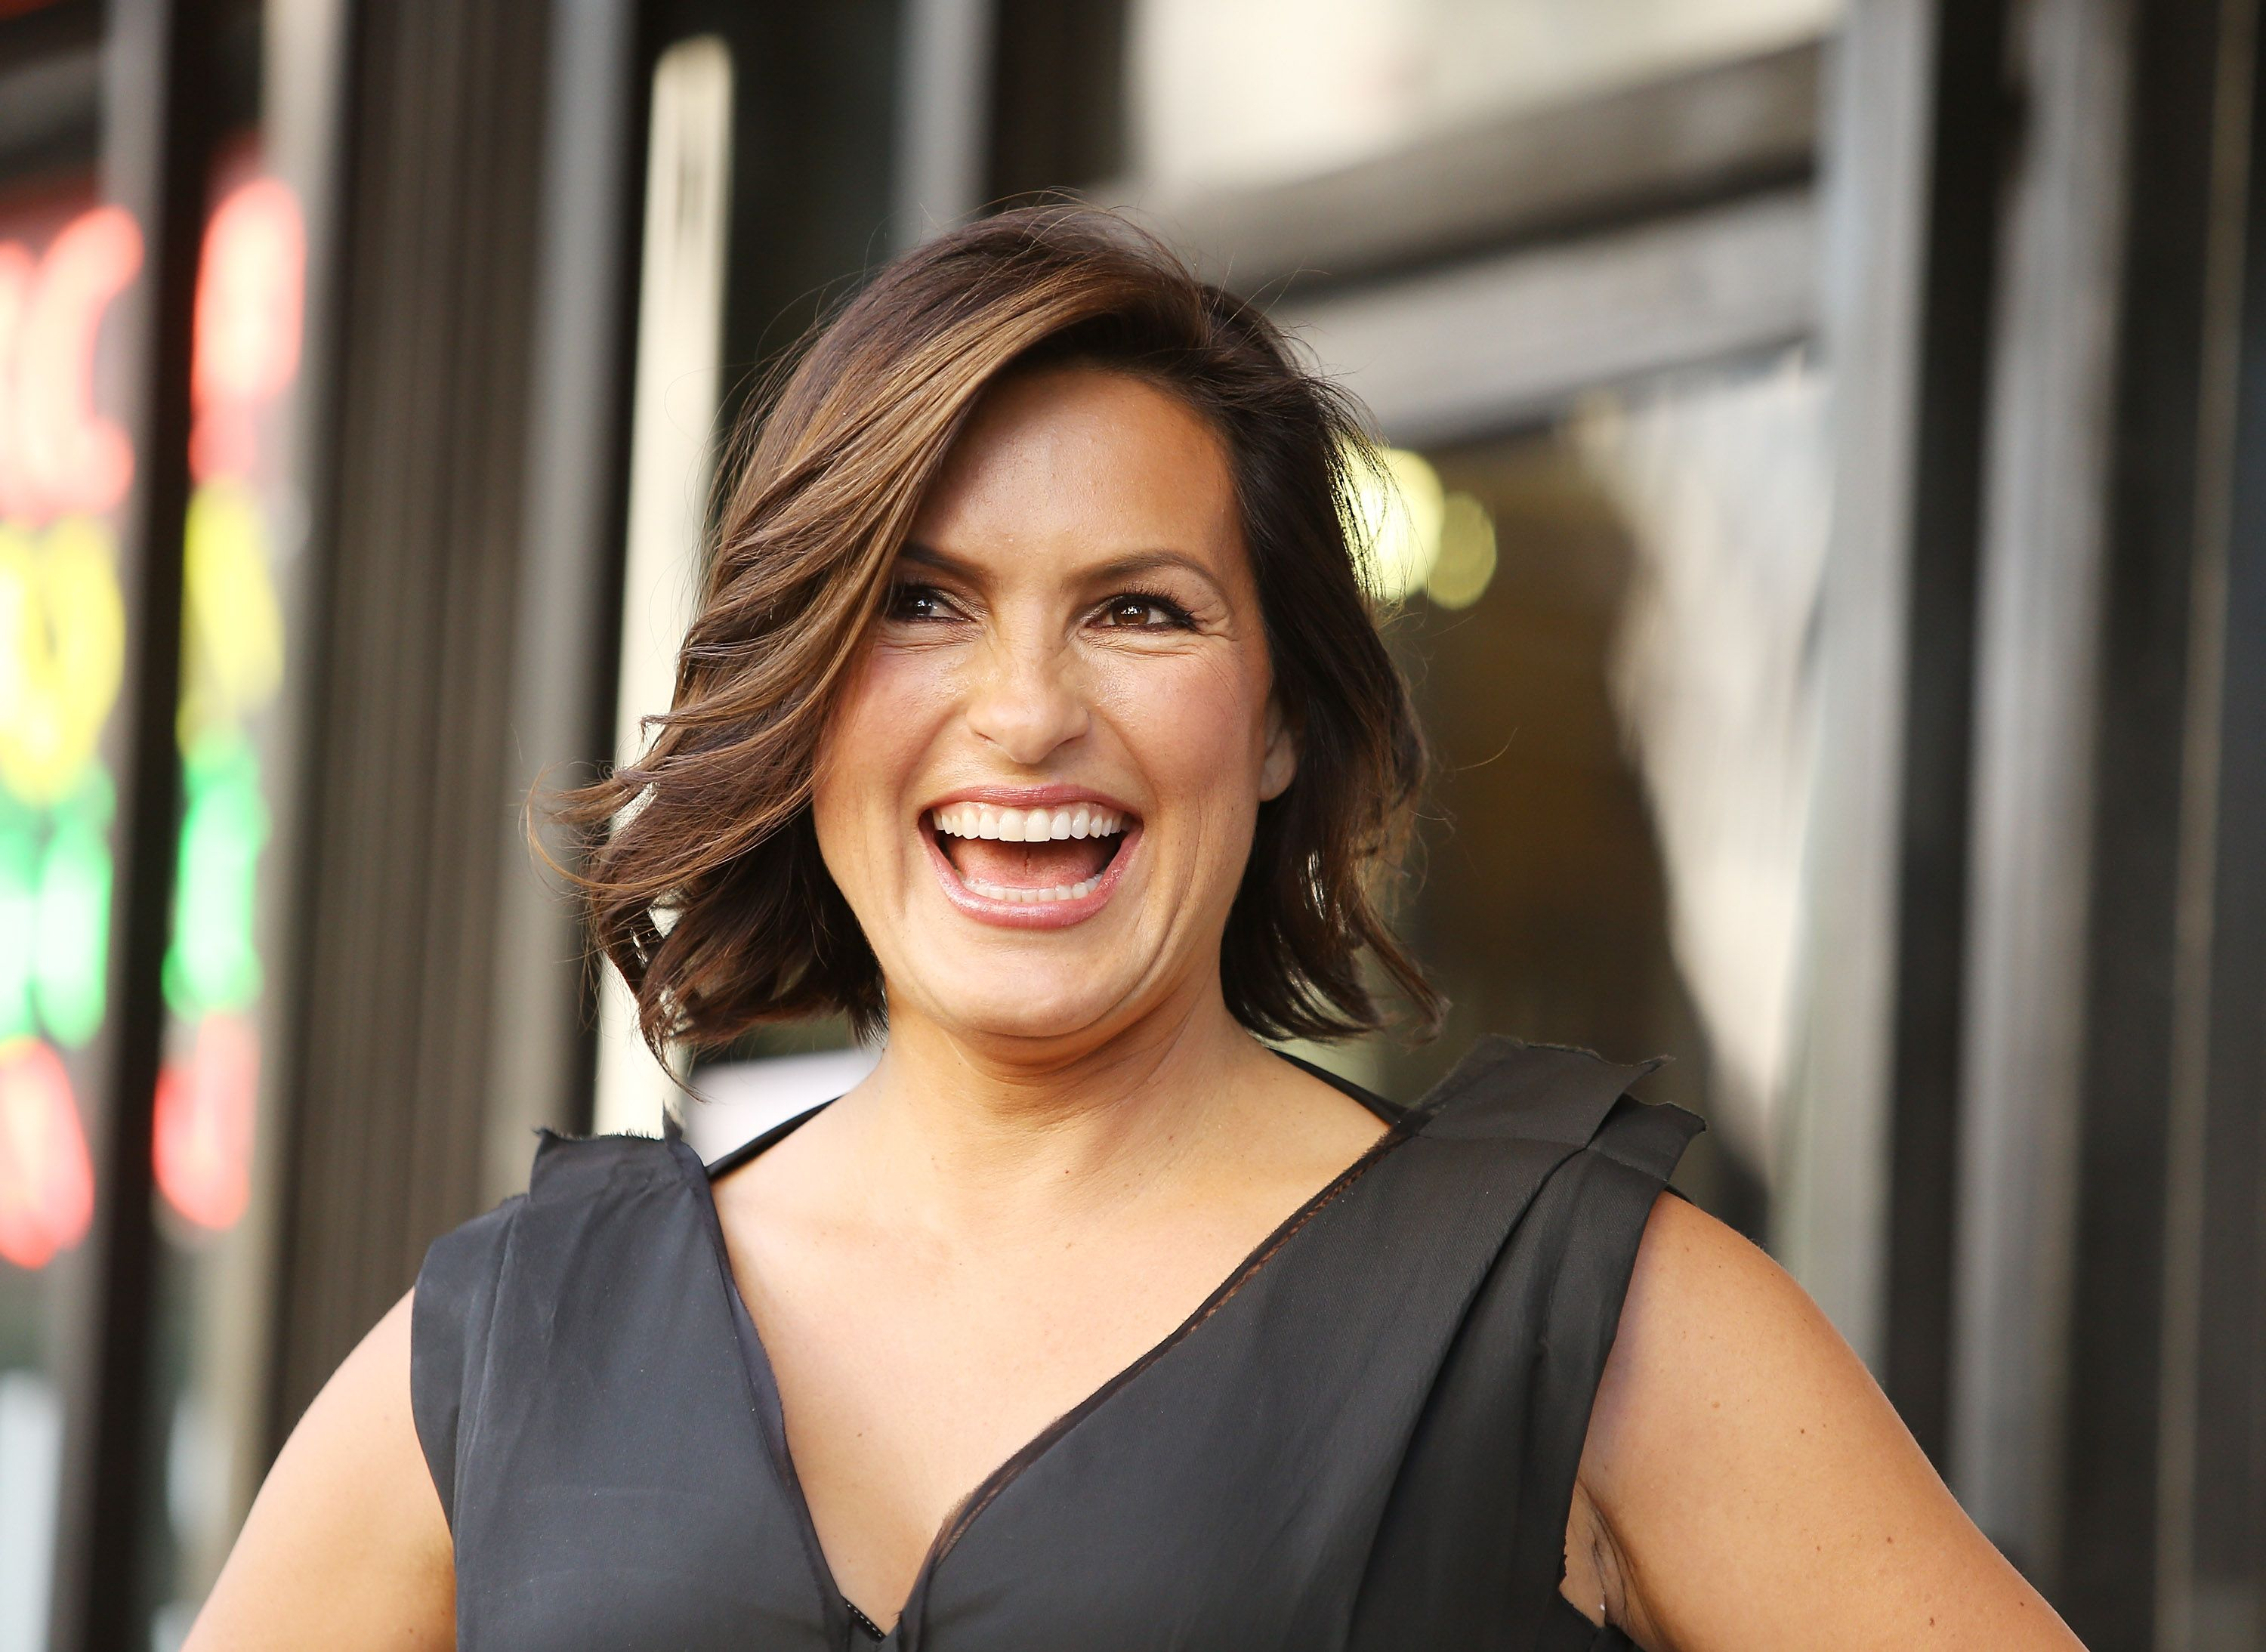 Mariska Hargitay attends the ceremony honoring her with a Star on The Hollywood Walk of Fame in Hollywood, California. | Photo: Getty Images